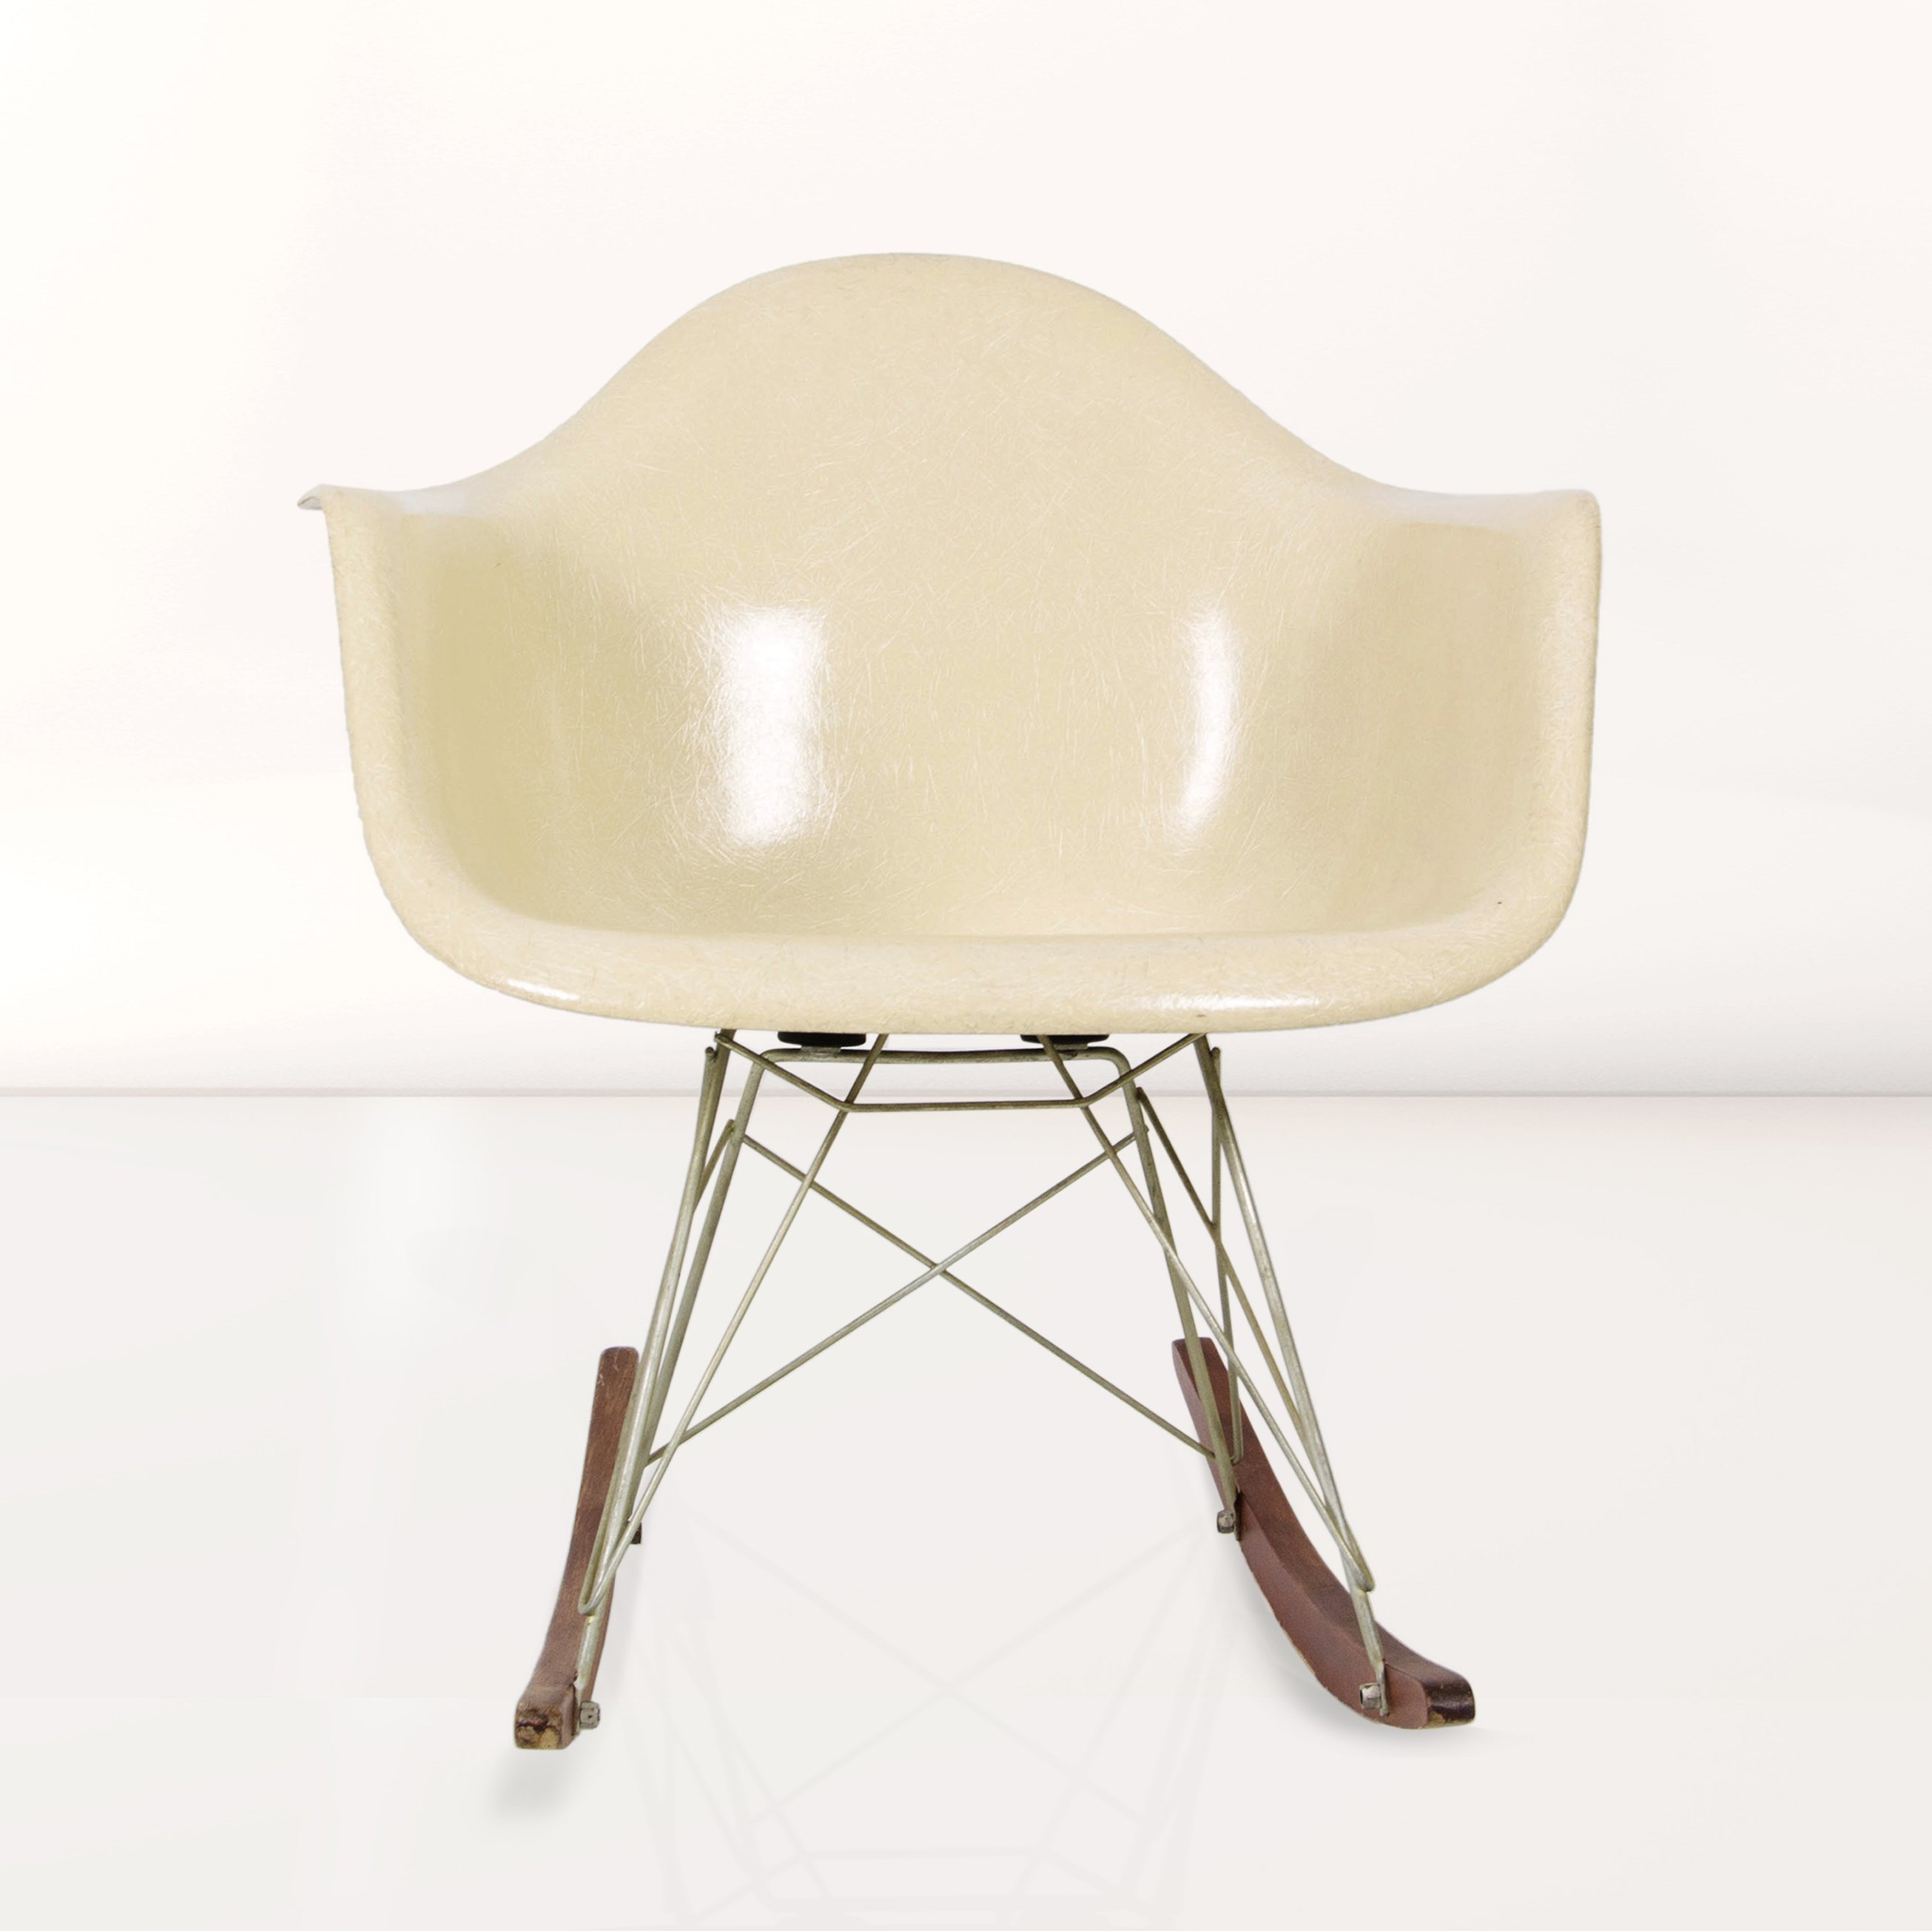 Rar rocking chair by charles ray eames for herman miller 1960s 69685 - Herman miller chair eames ...